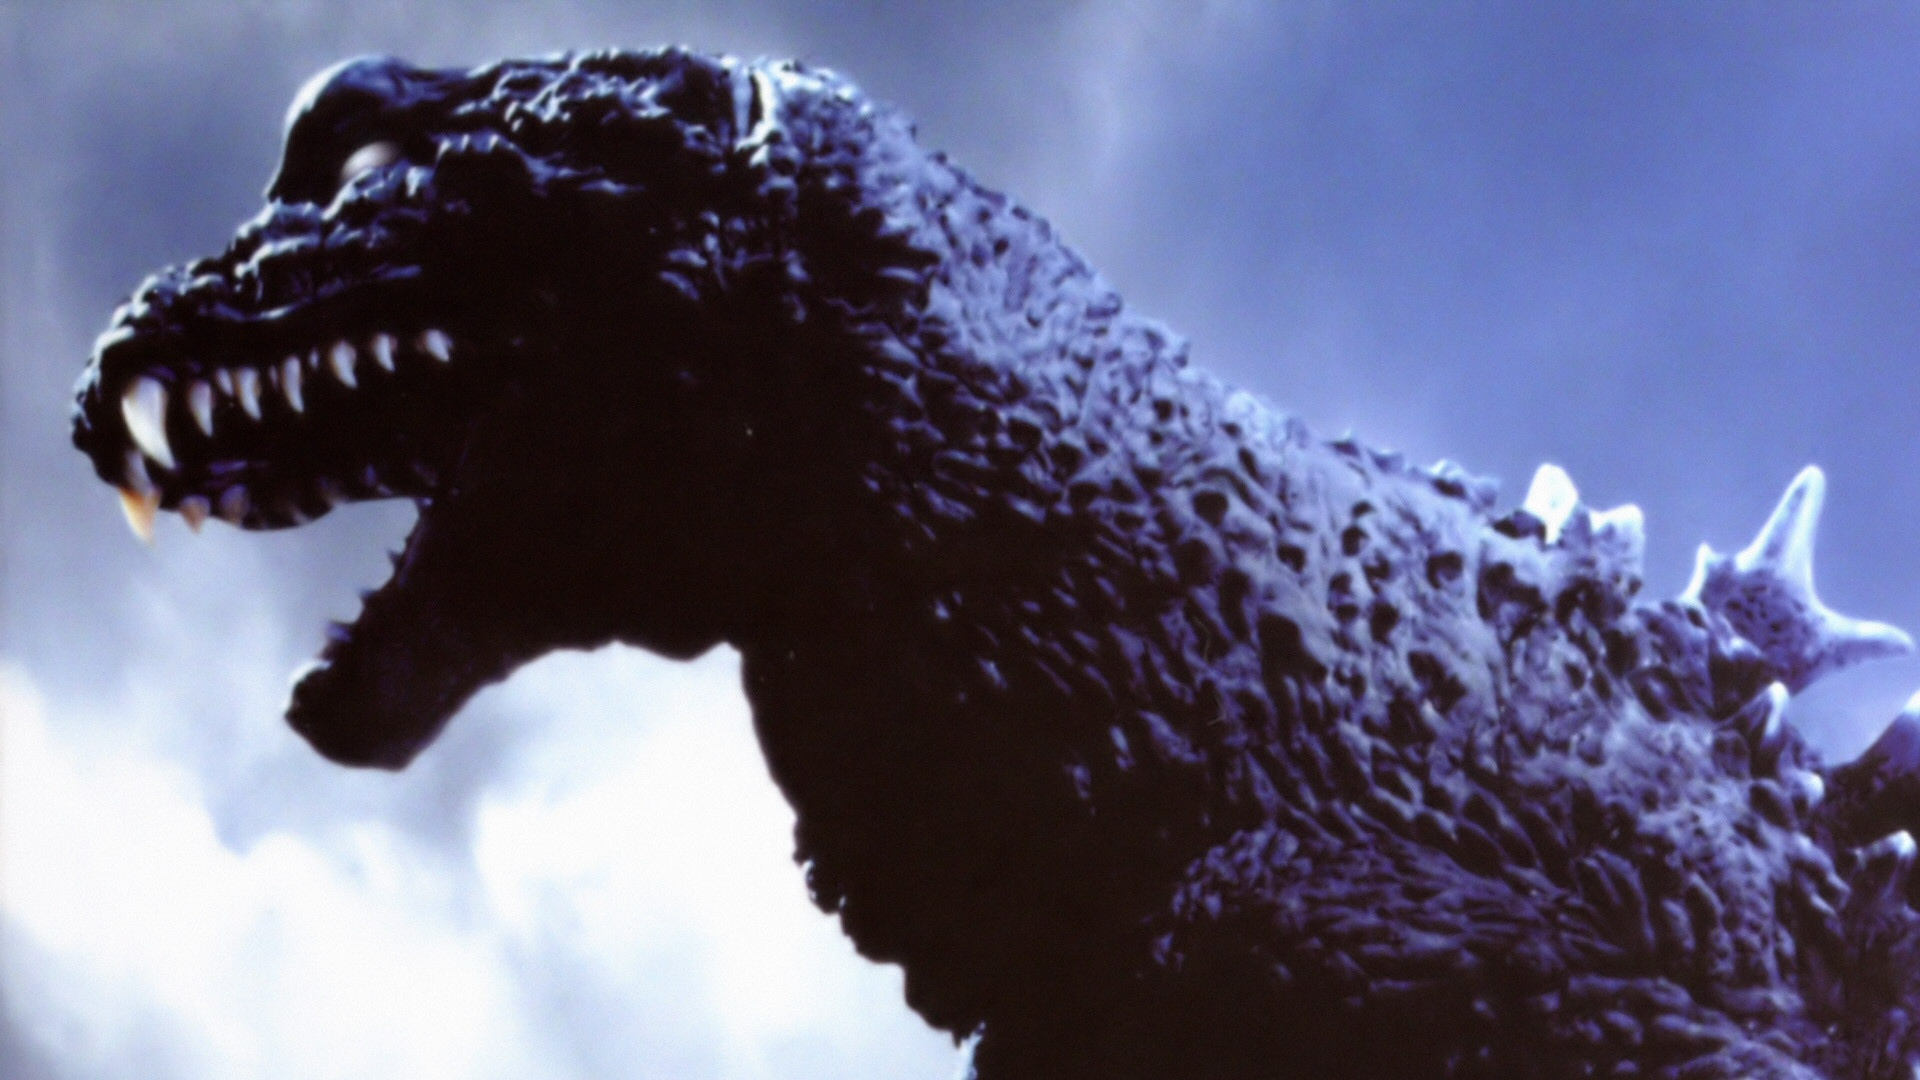 Godzilla 2001 Download Movie Pictures Photos Images 1920x1080